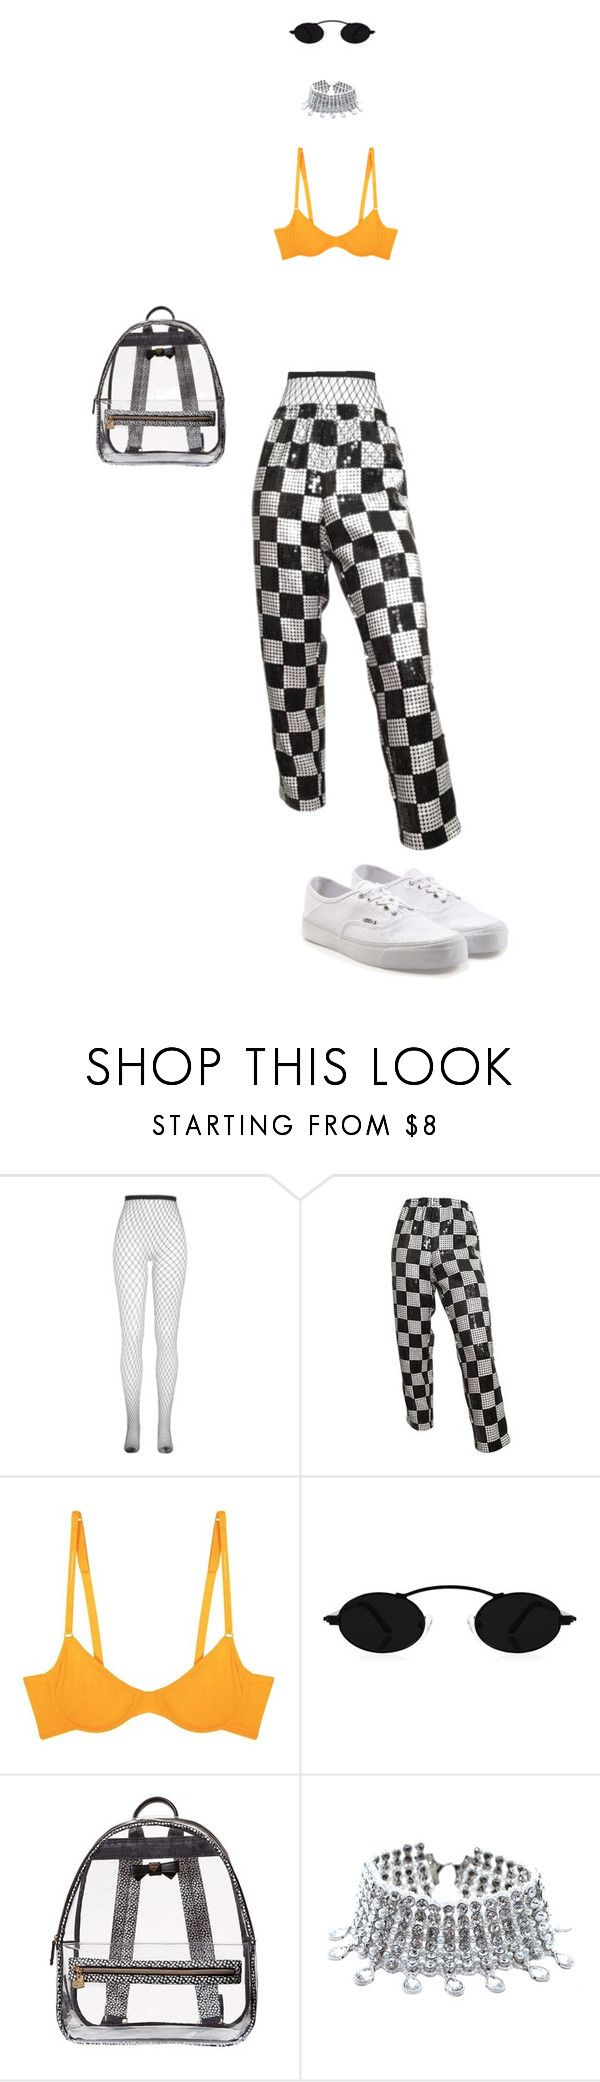 """bri"" by truuujb ❤ liked on Polyvore featuring Cosabella, Betsey Johnson, Child Of Wild and Vans"